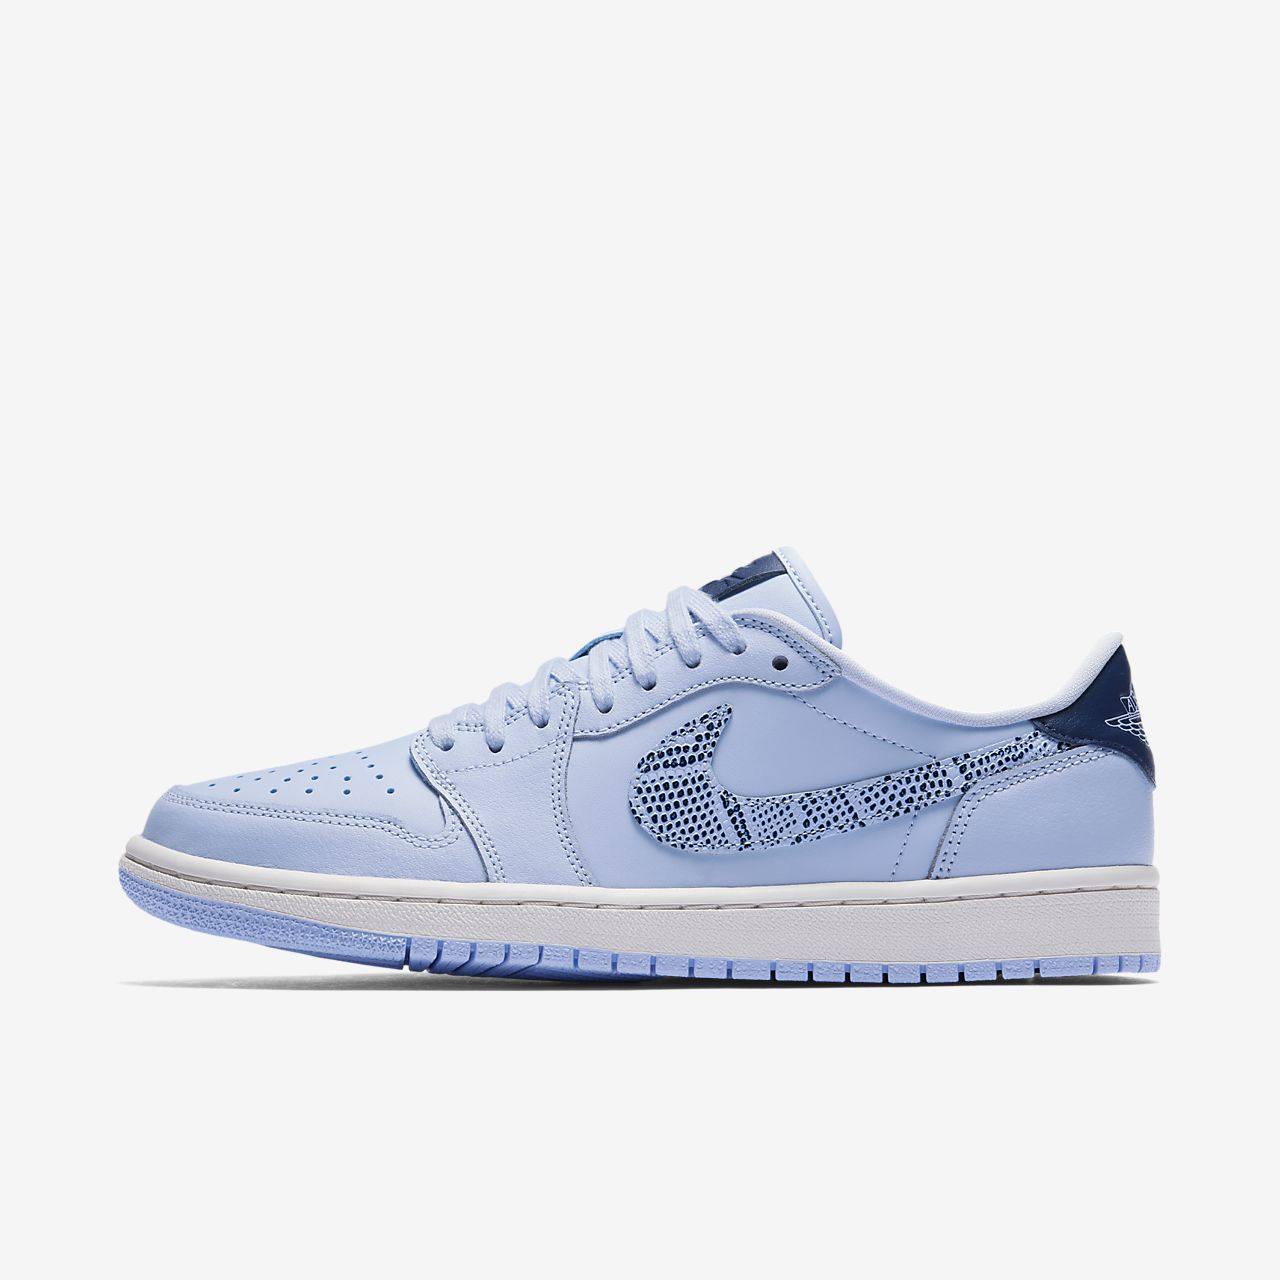 fa0c96e807250 Scarpa Air Jordan 1 Retro Low OG - Donna. Nike.com IT